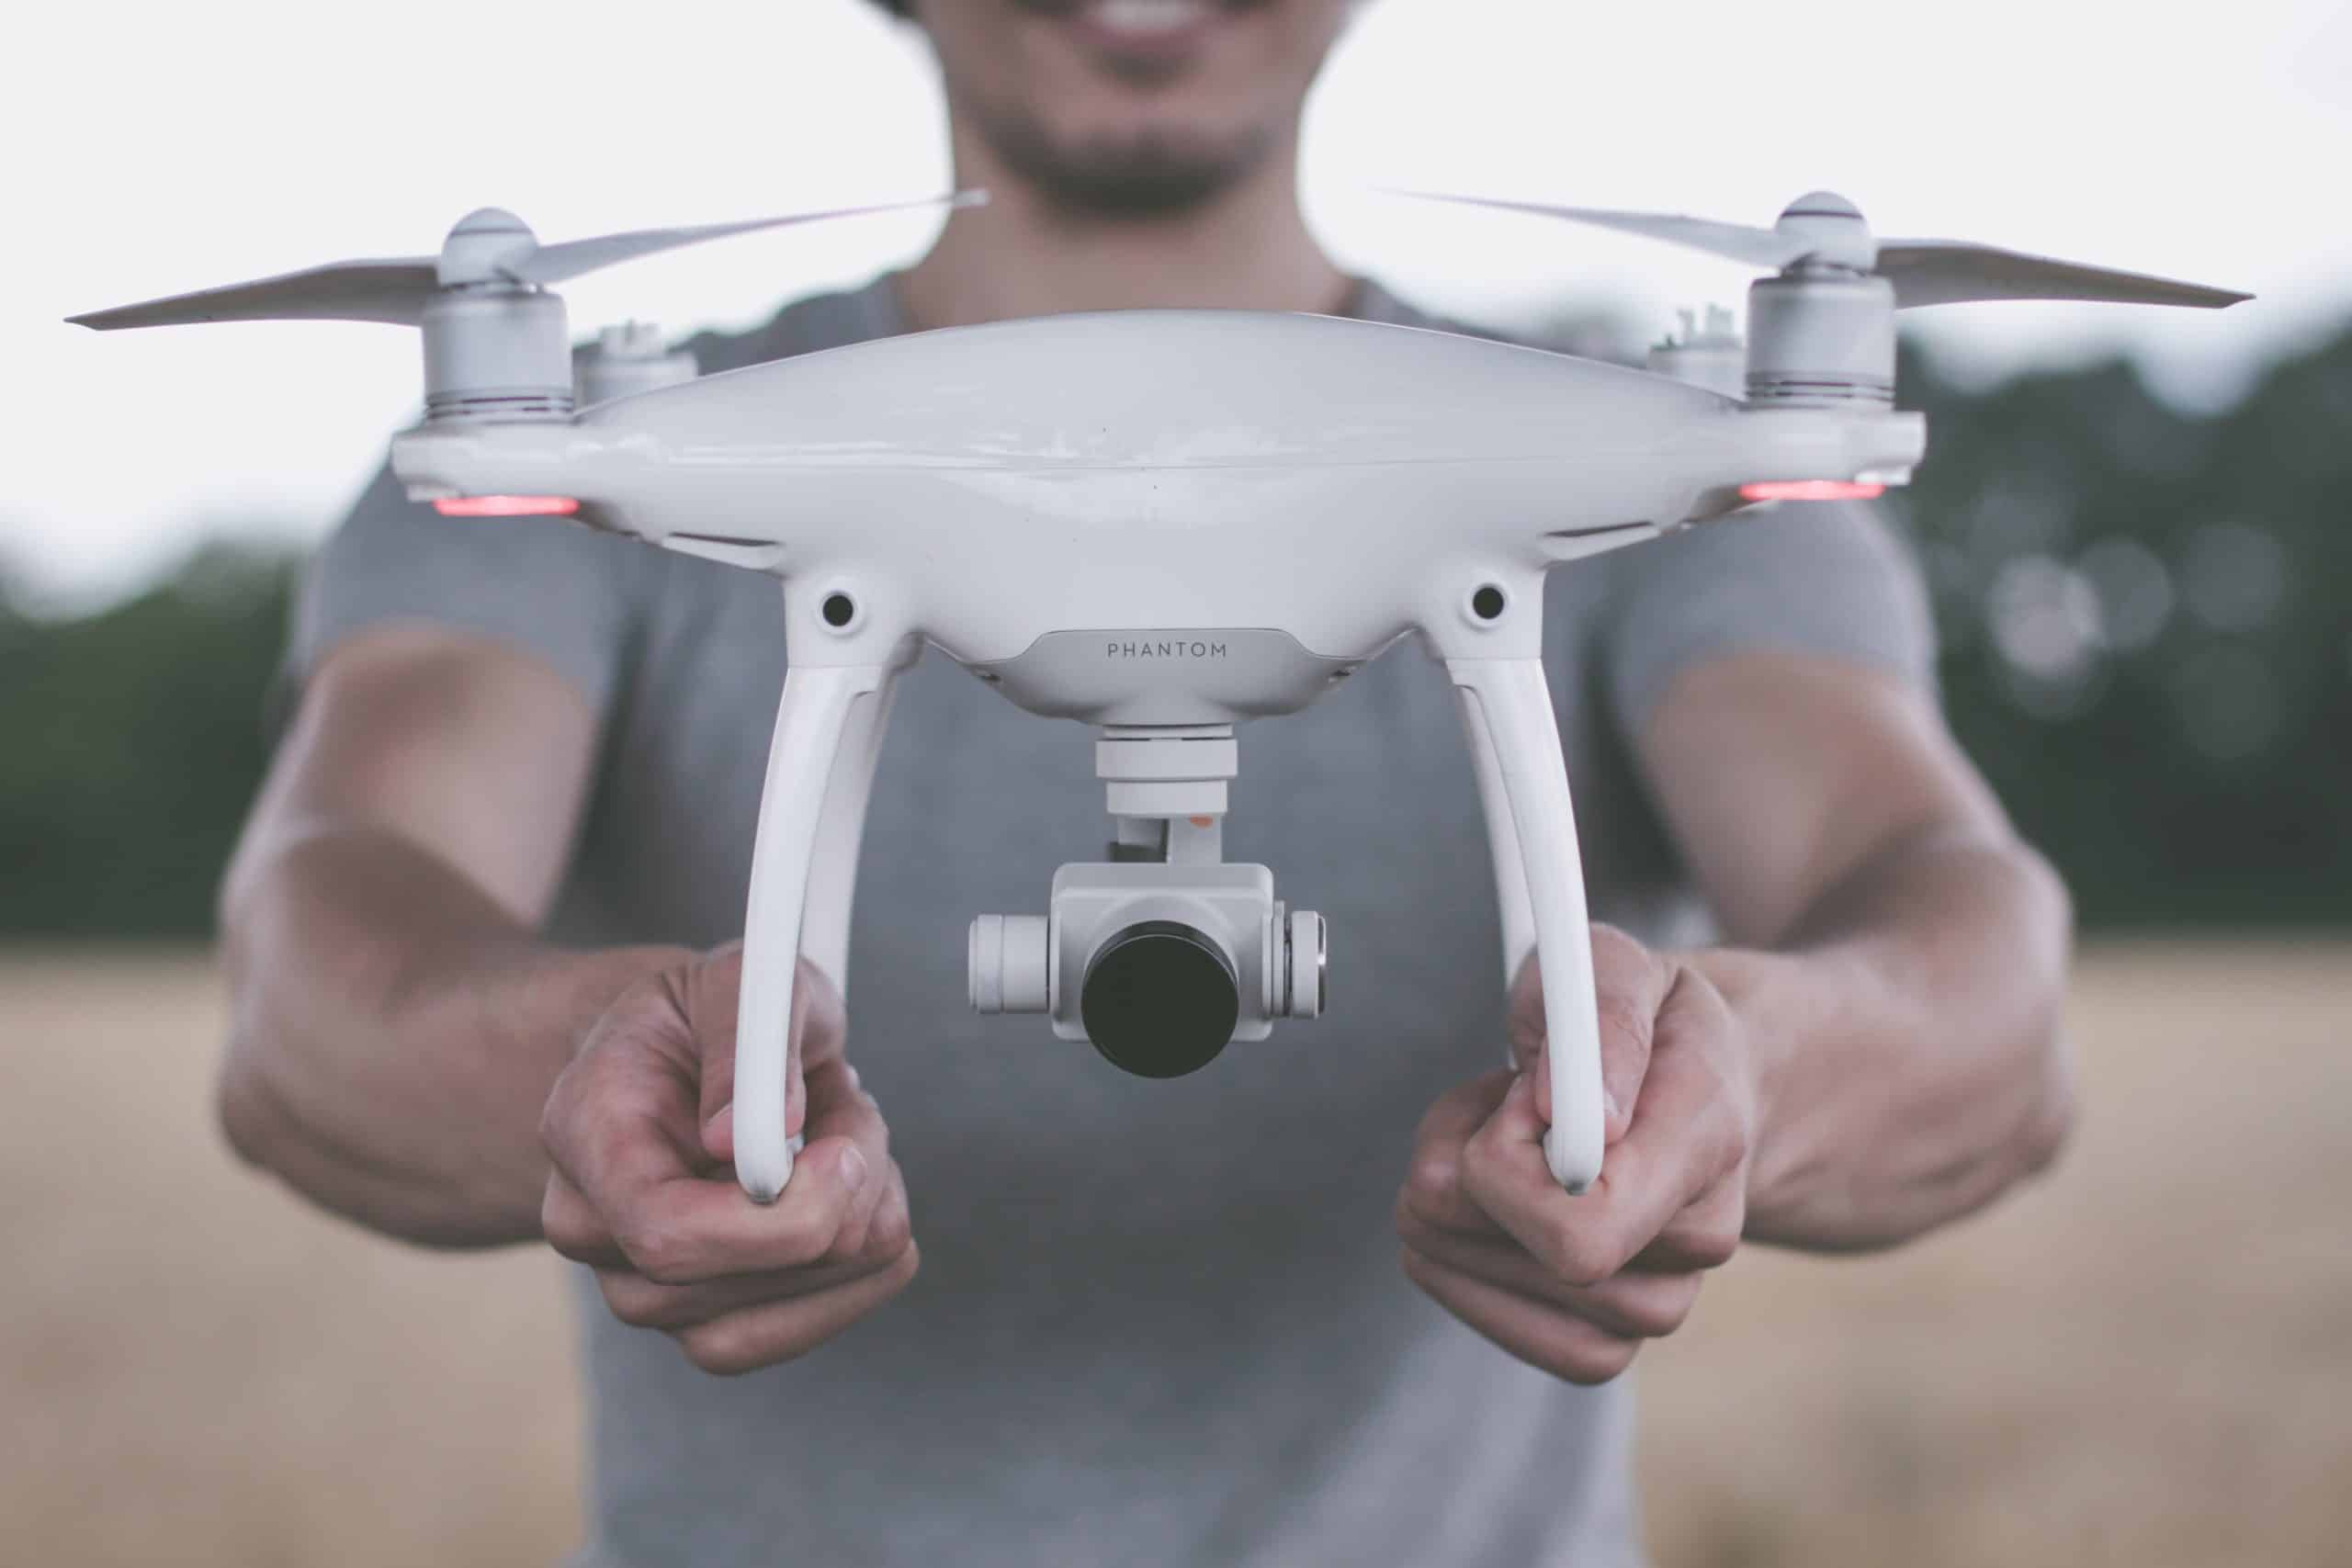 Holding a drone preparing for drone photography and videography